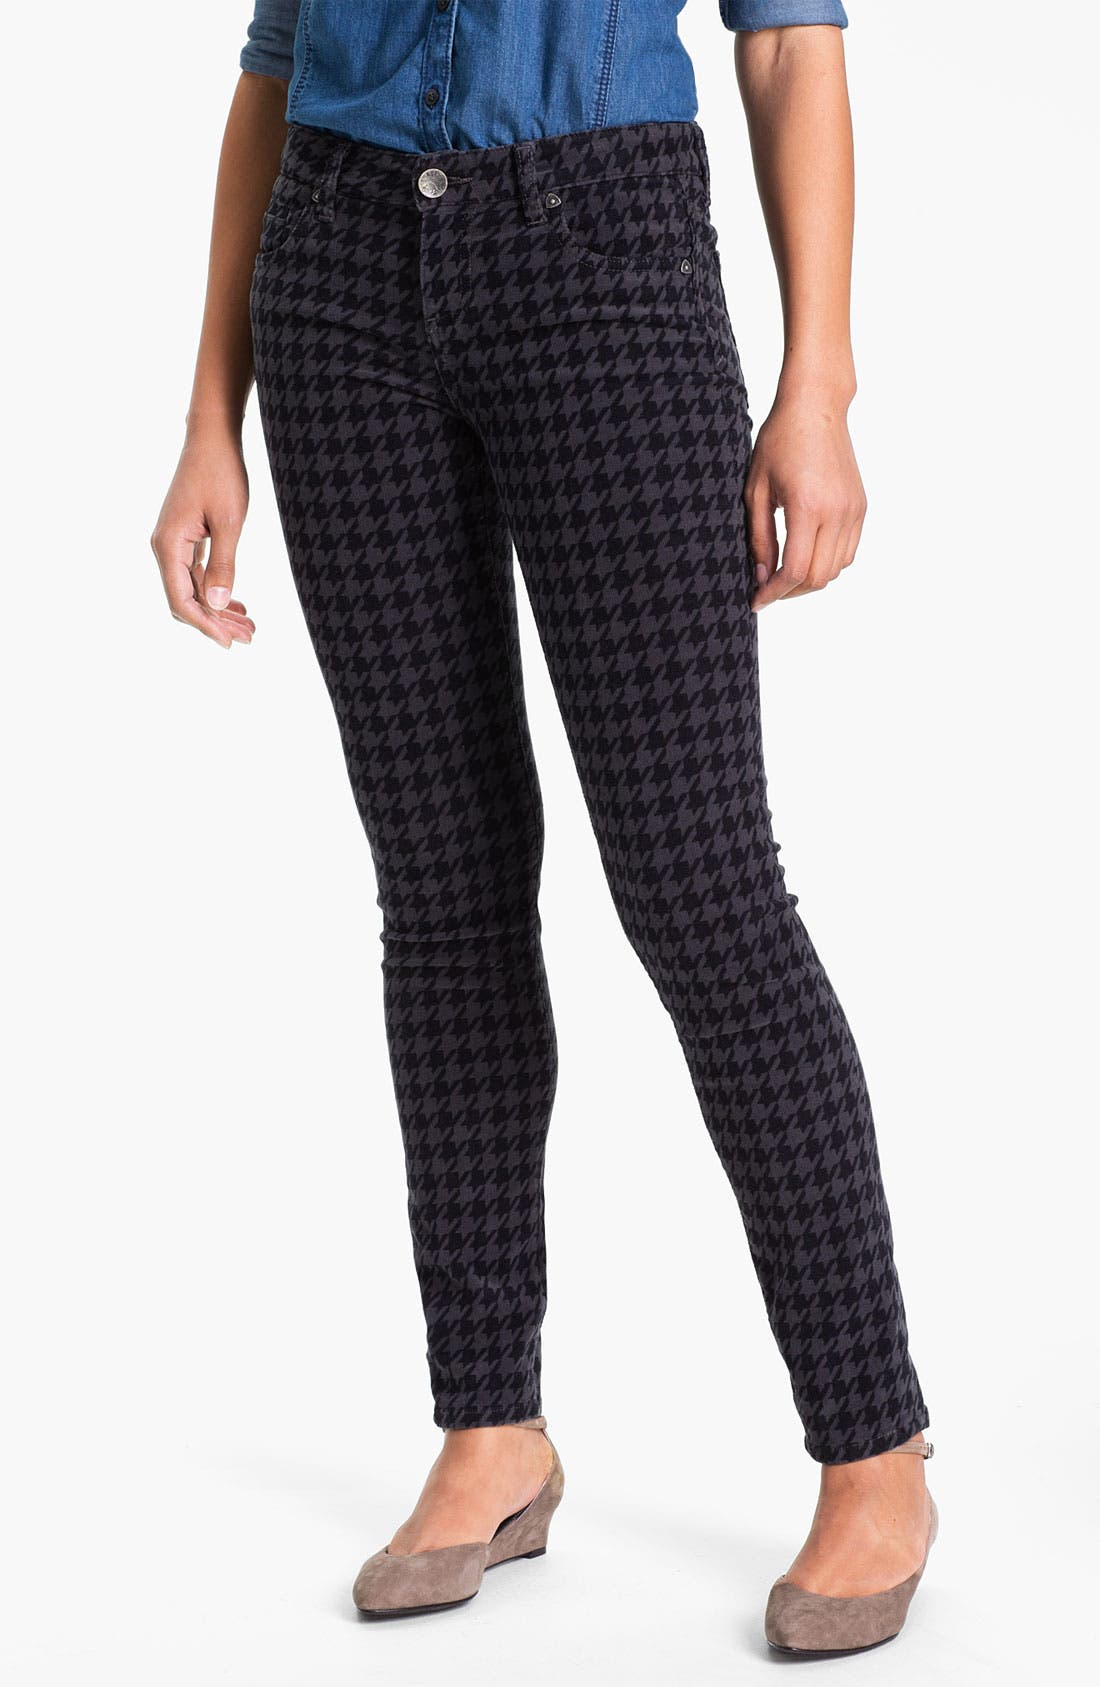 Alternate Image 1 Selected - KUT from the Kloth Houndstooth Corduroy Pants